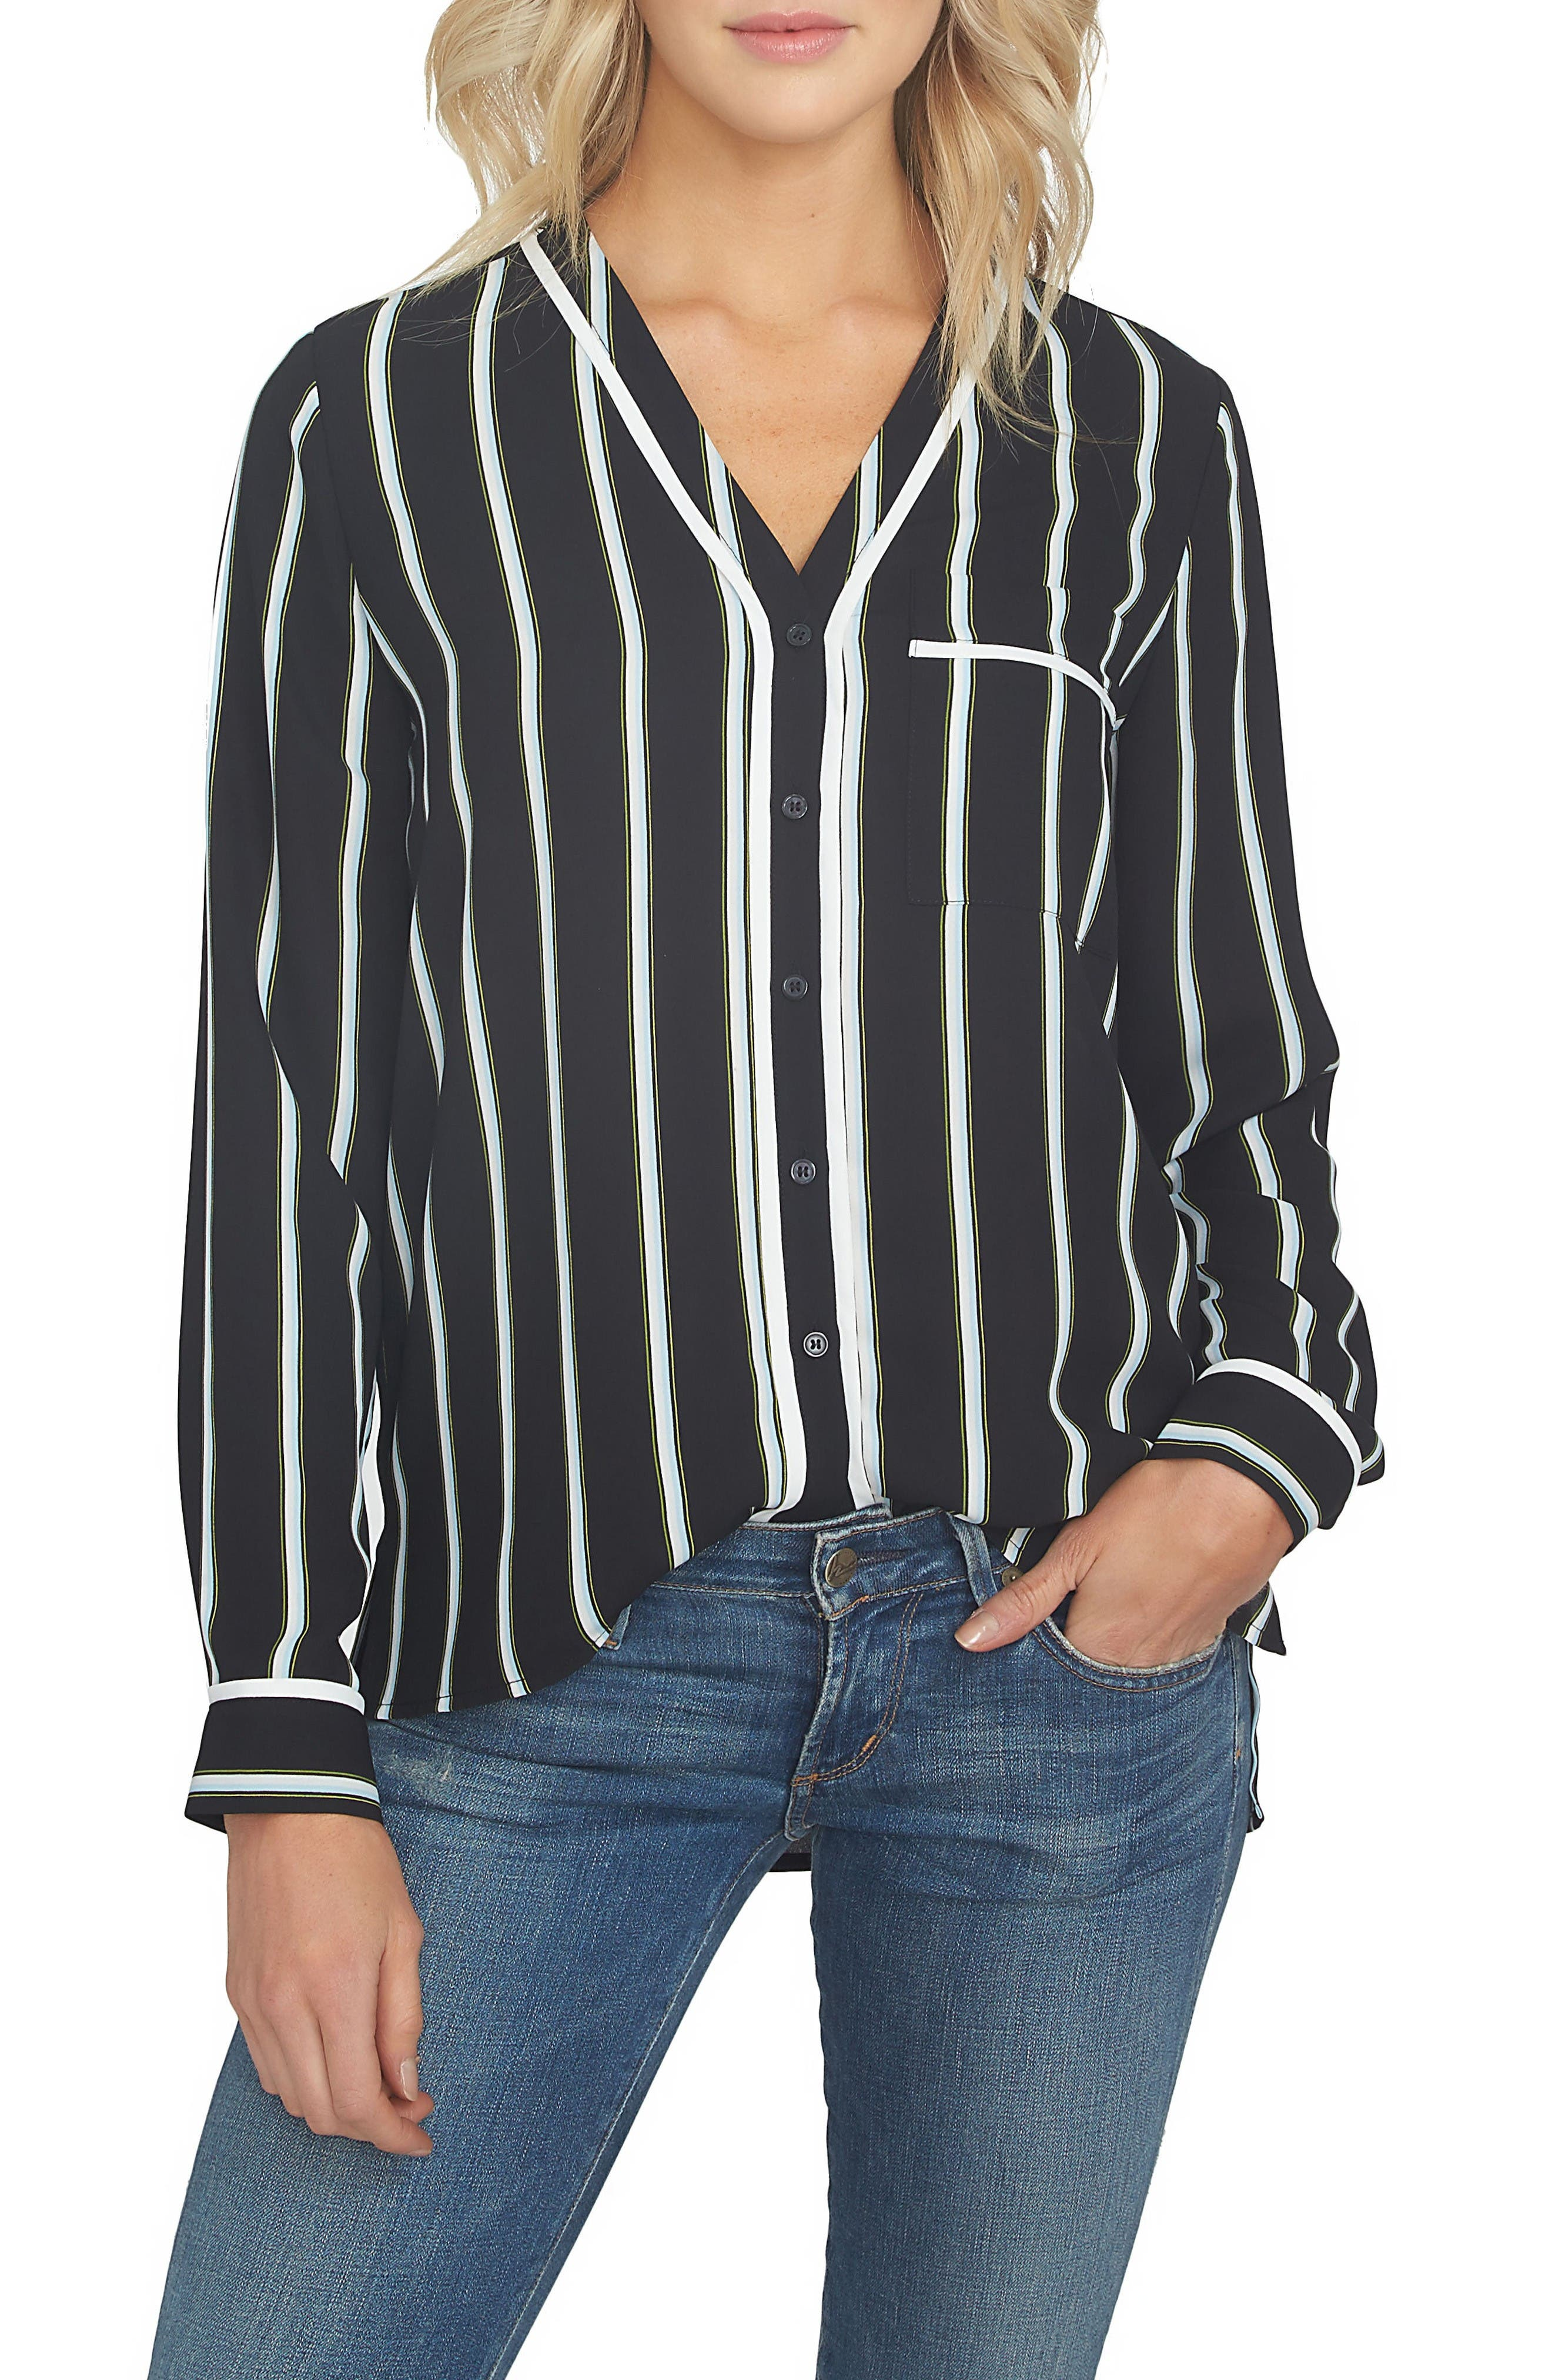 Alternate Image 1 Selected - 1.STATE Stripe High/Low Blouse